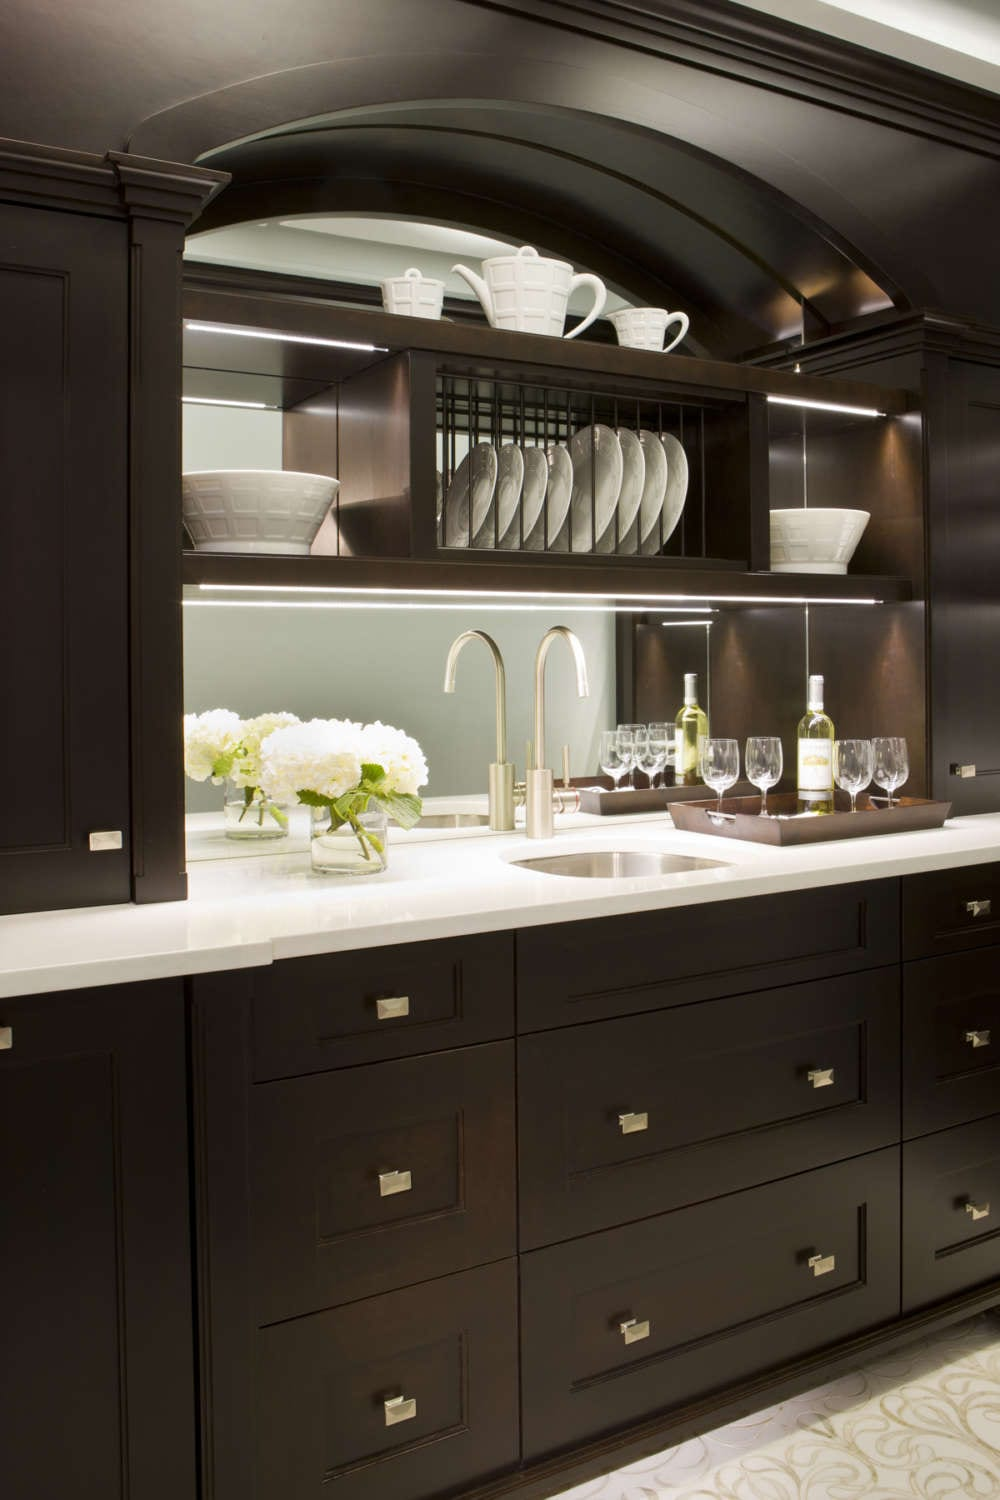 Butler's pantry features shaker style, frameless fully custom Rutt Handcrafted Cabinetry in walnut with a dark stain, beautiful moldings and mirror inserts. Design by Tom Vecchio of Bilotta Kitchens.